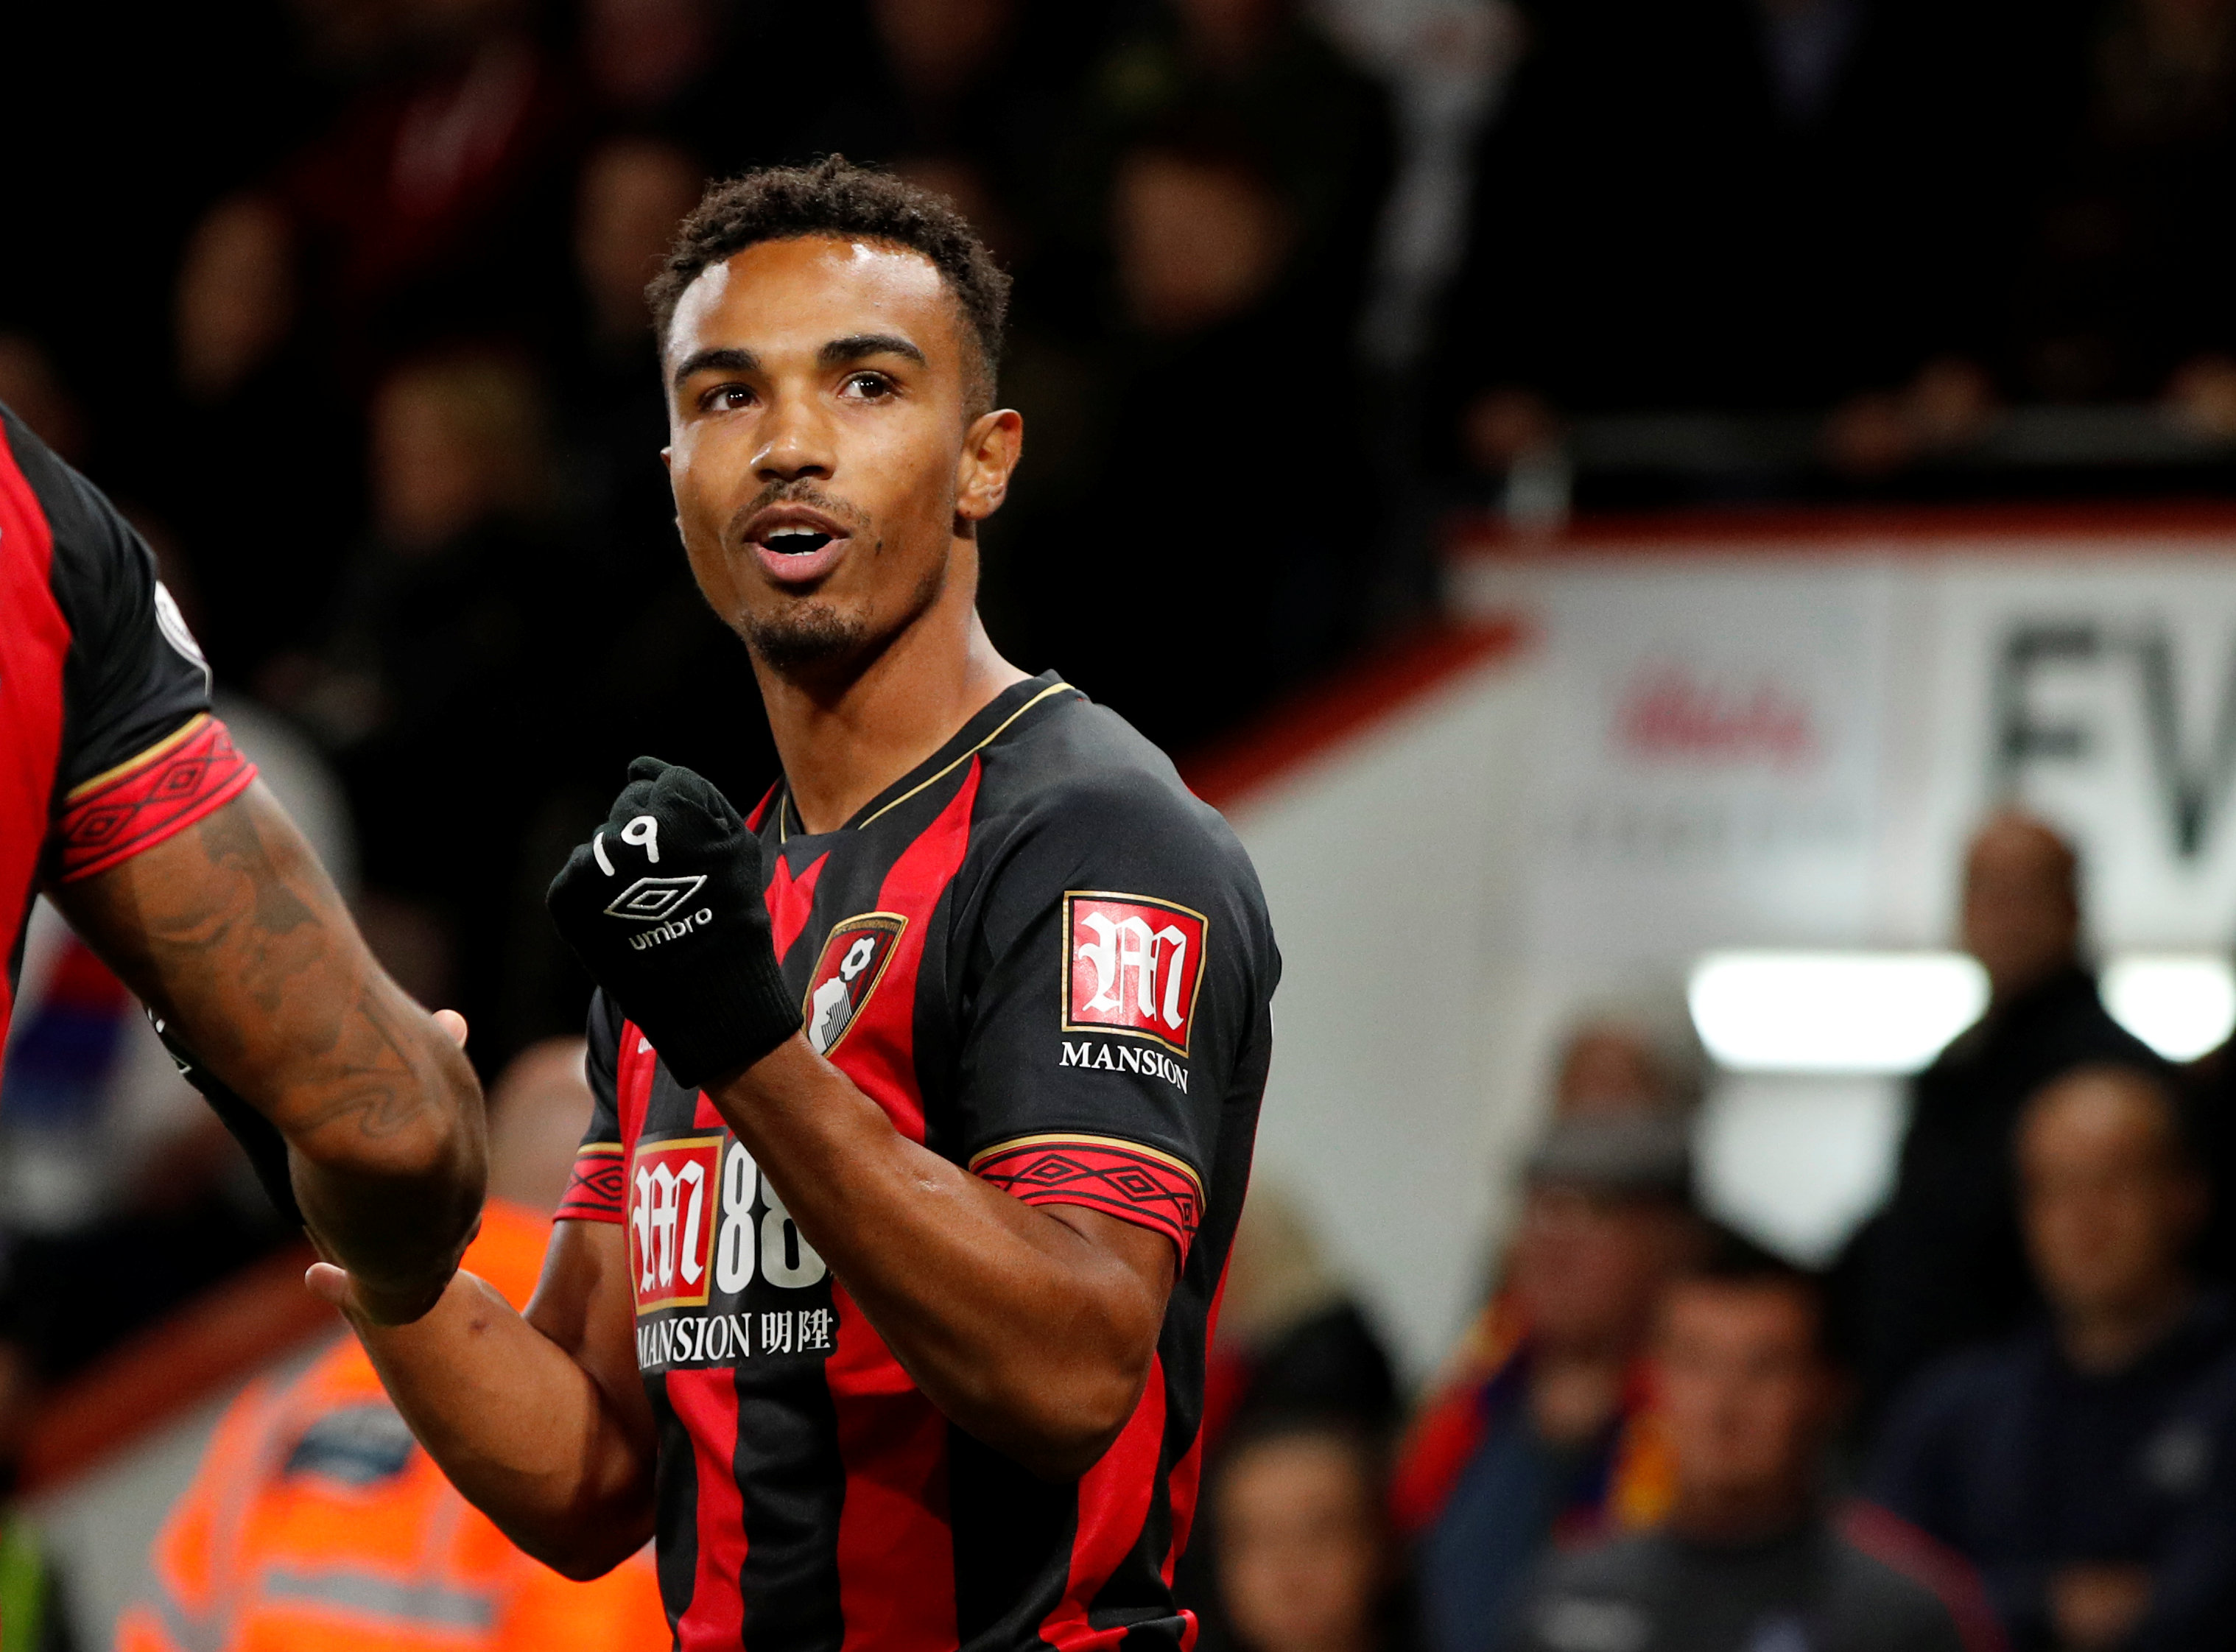 Football: Late Stanislas penalty gives Bournemouth win over Palace